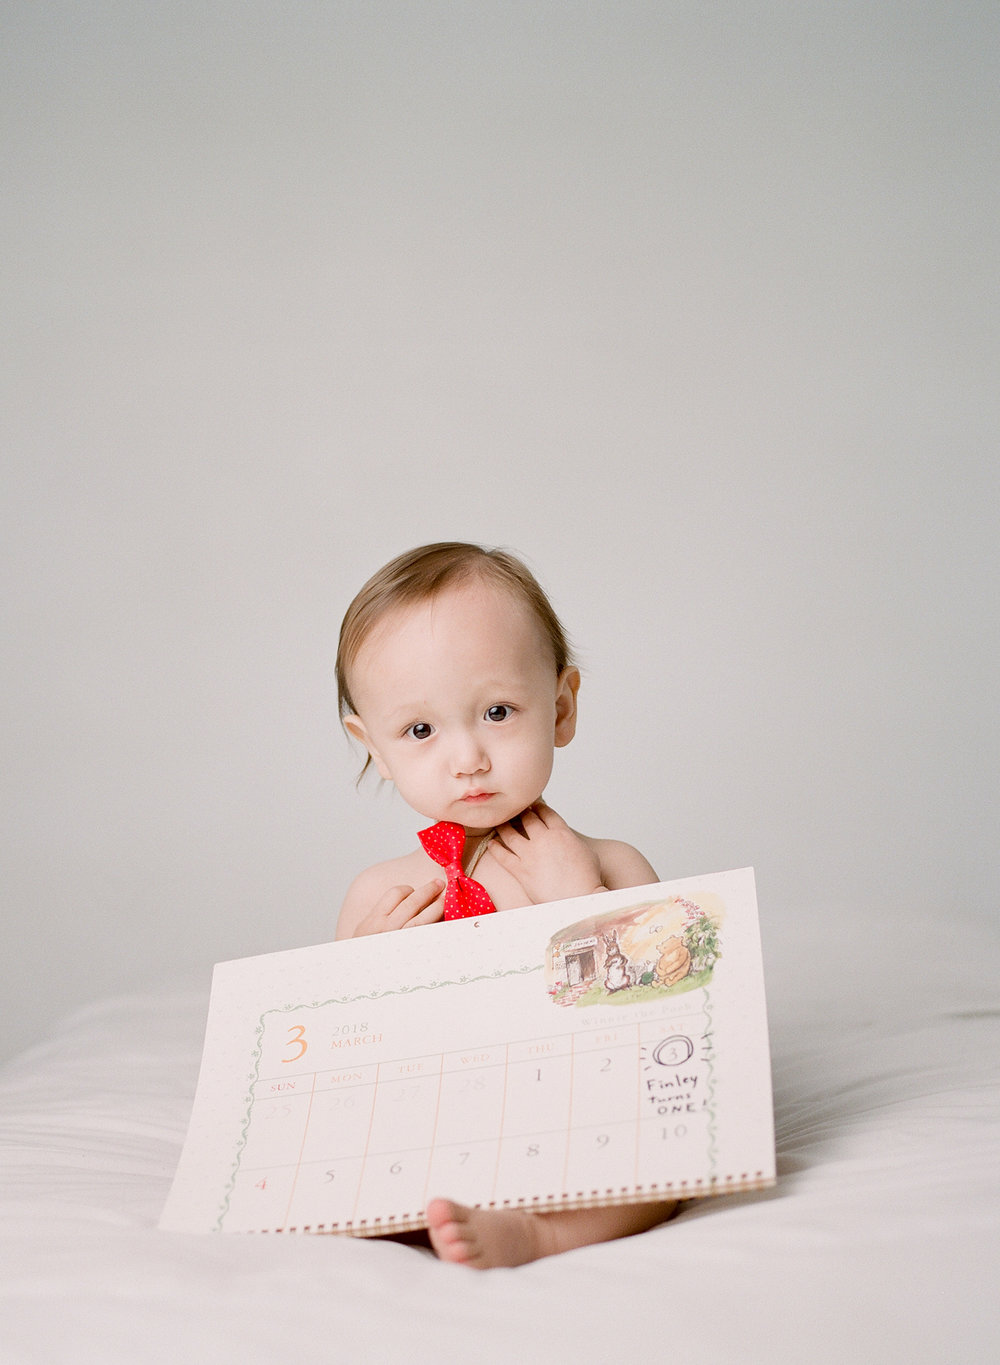 what to bring to a photography studio | bringing props and toys to your studio session | baby's first birthday wearing red bowtie and holding calendar | film photographer sandra coan